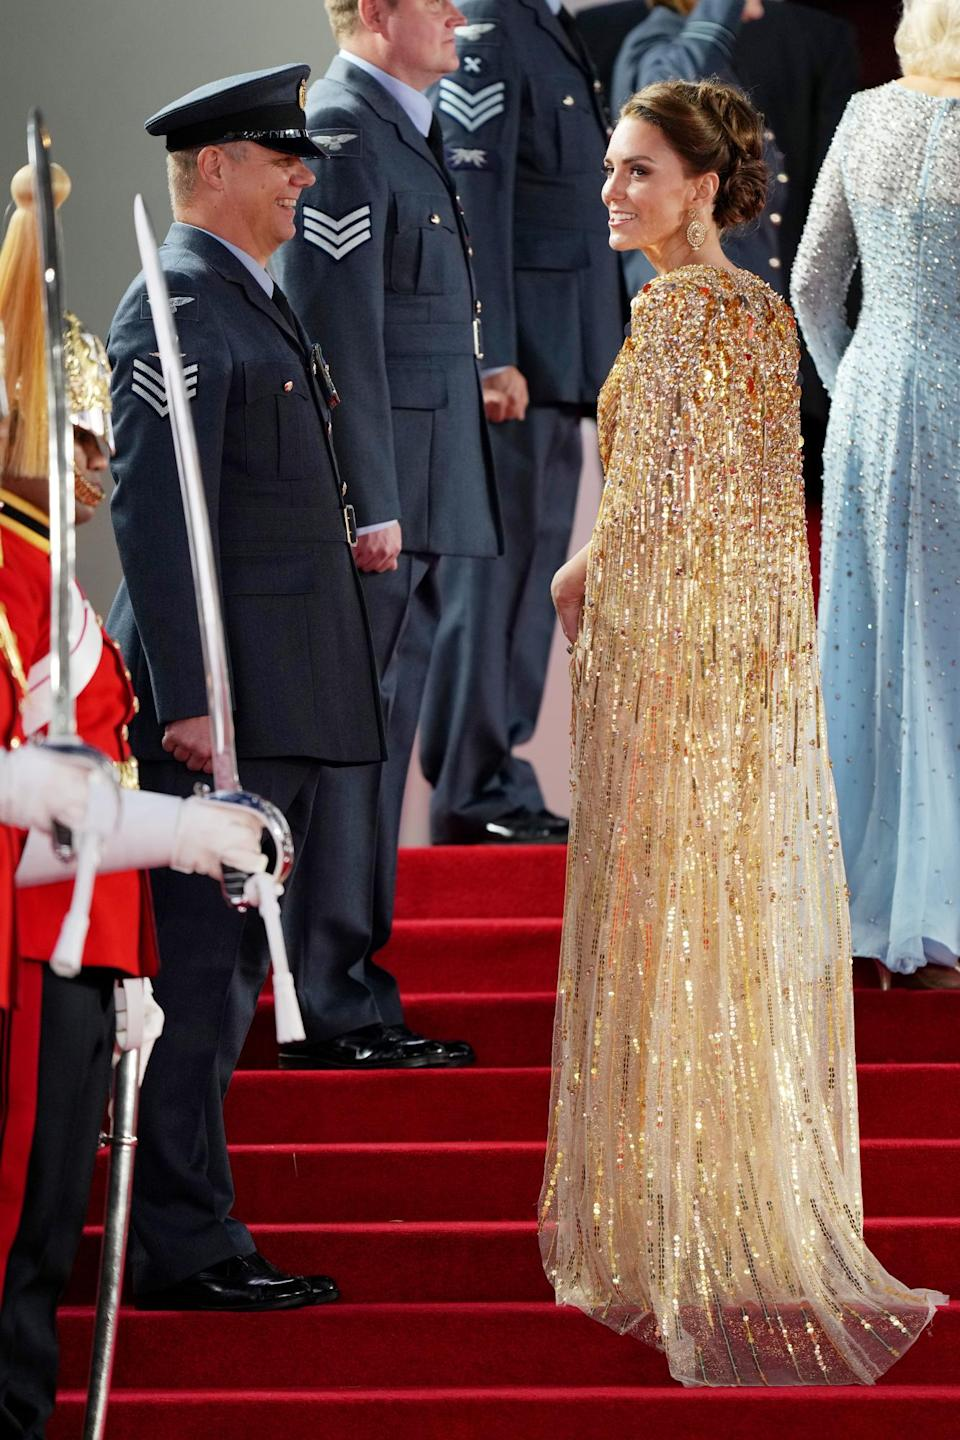 <p>On the steps into the theater, she was sure to greet the various service men and women, as well. </p>